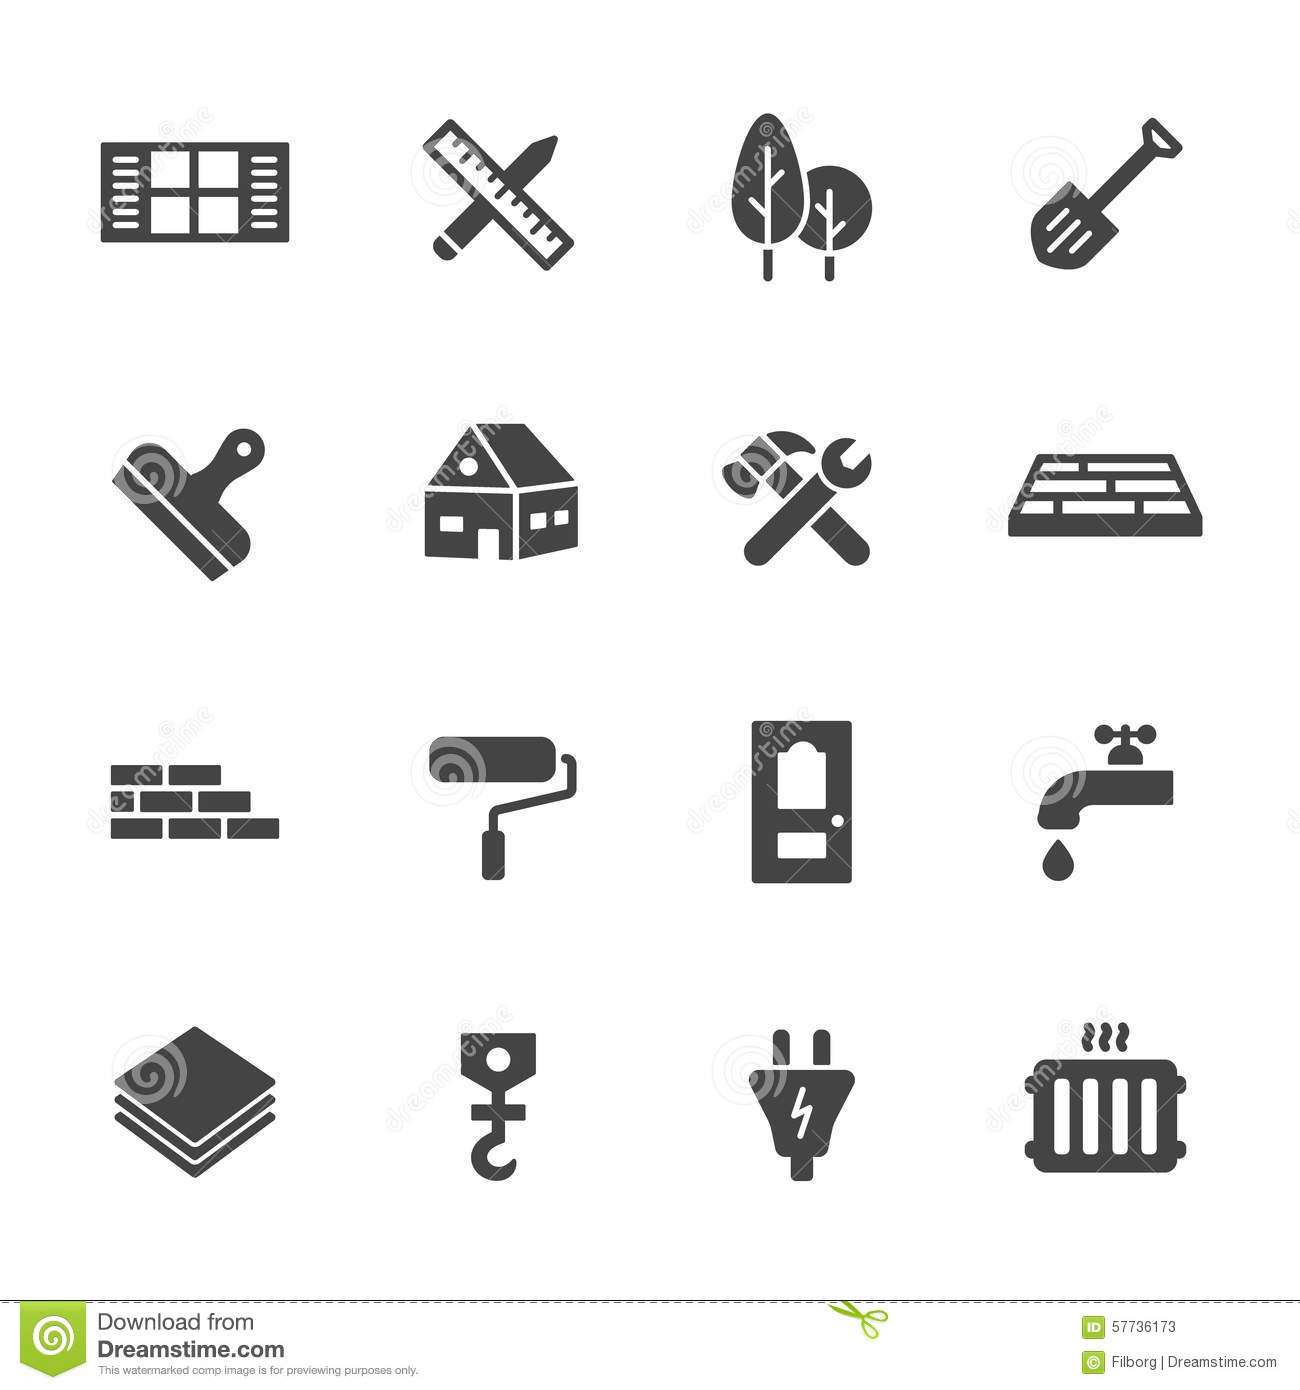 1511779 further Stock Illustration Construction Icons Building Home Repair Simple Flat Vector Set White Background Image57736173 likewise 6 24 further 39893262 as well Proyecto. on 68 flat roof